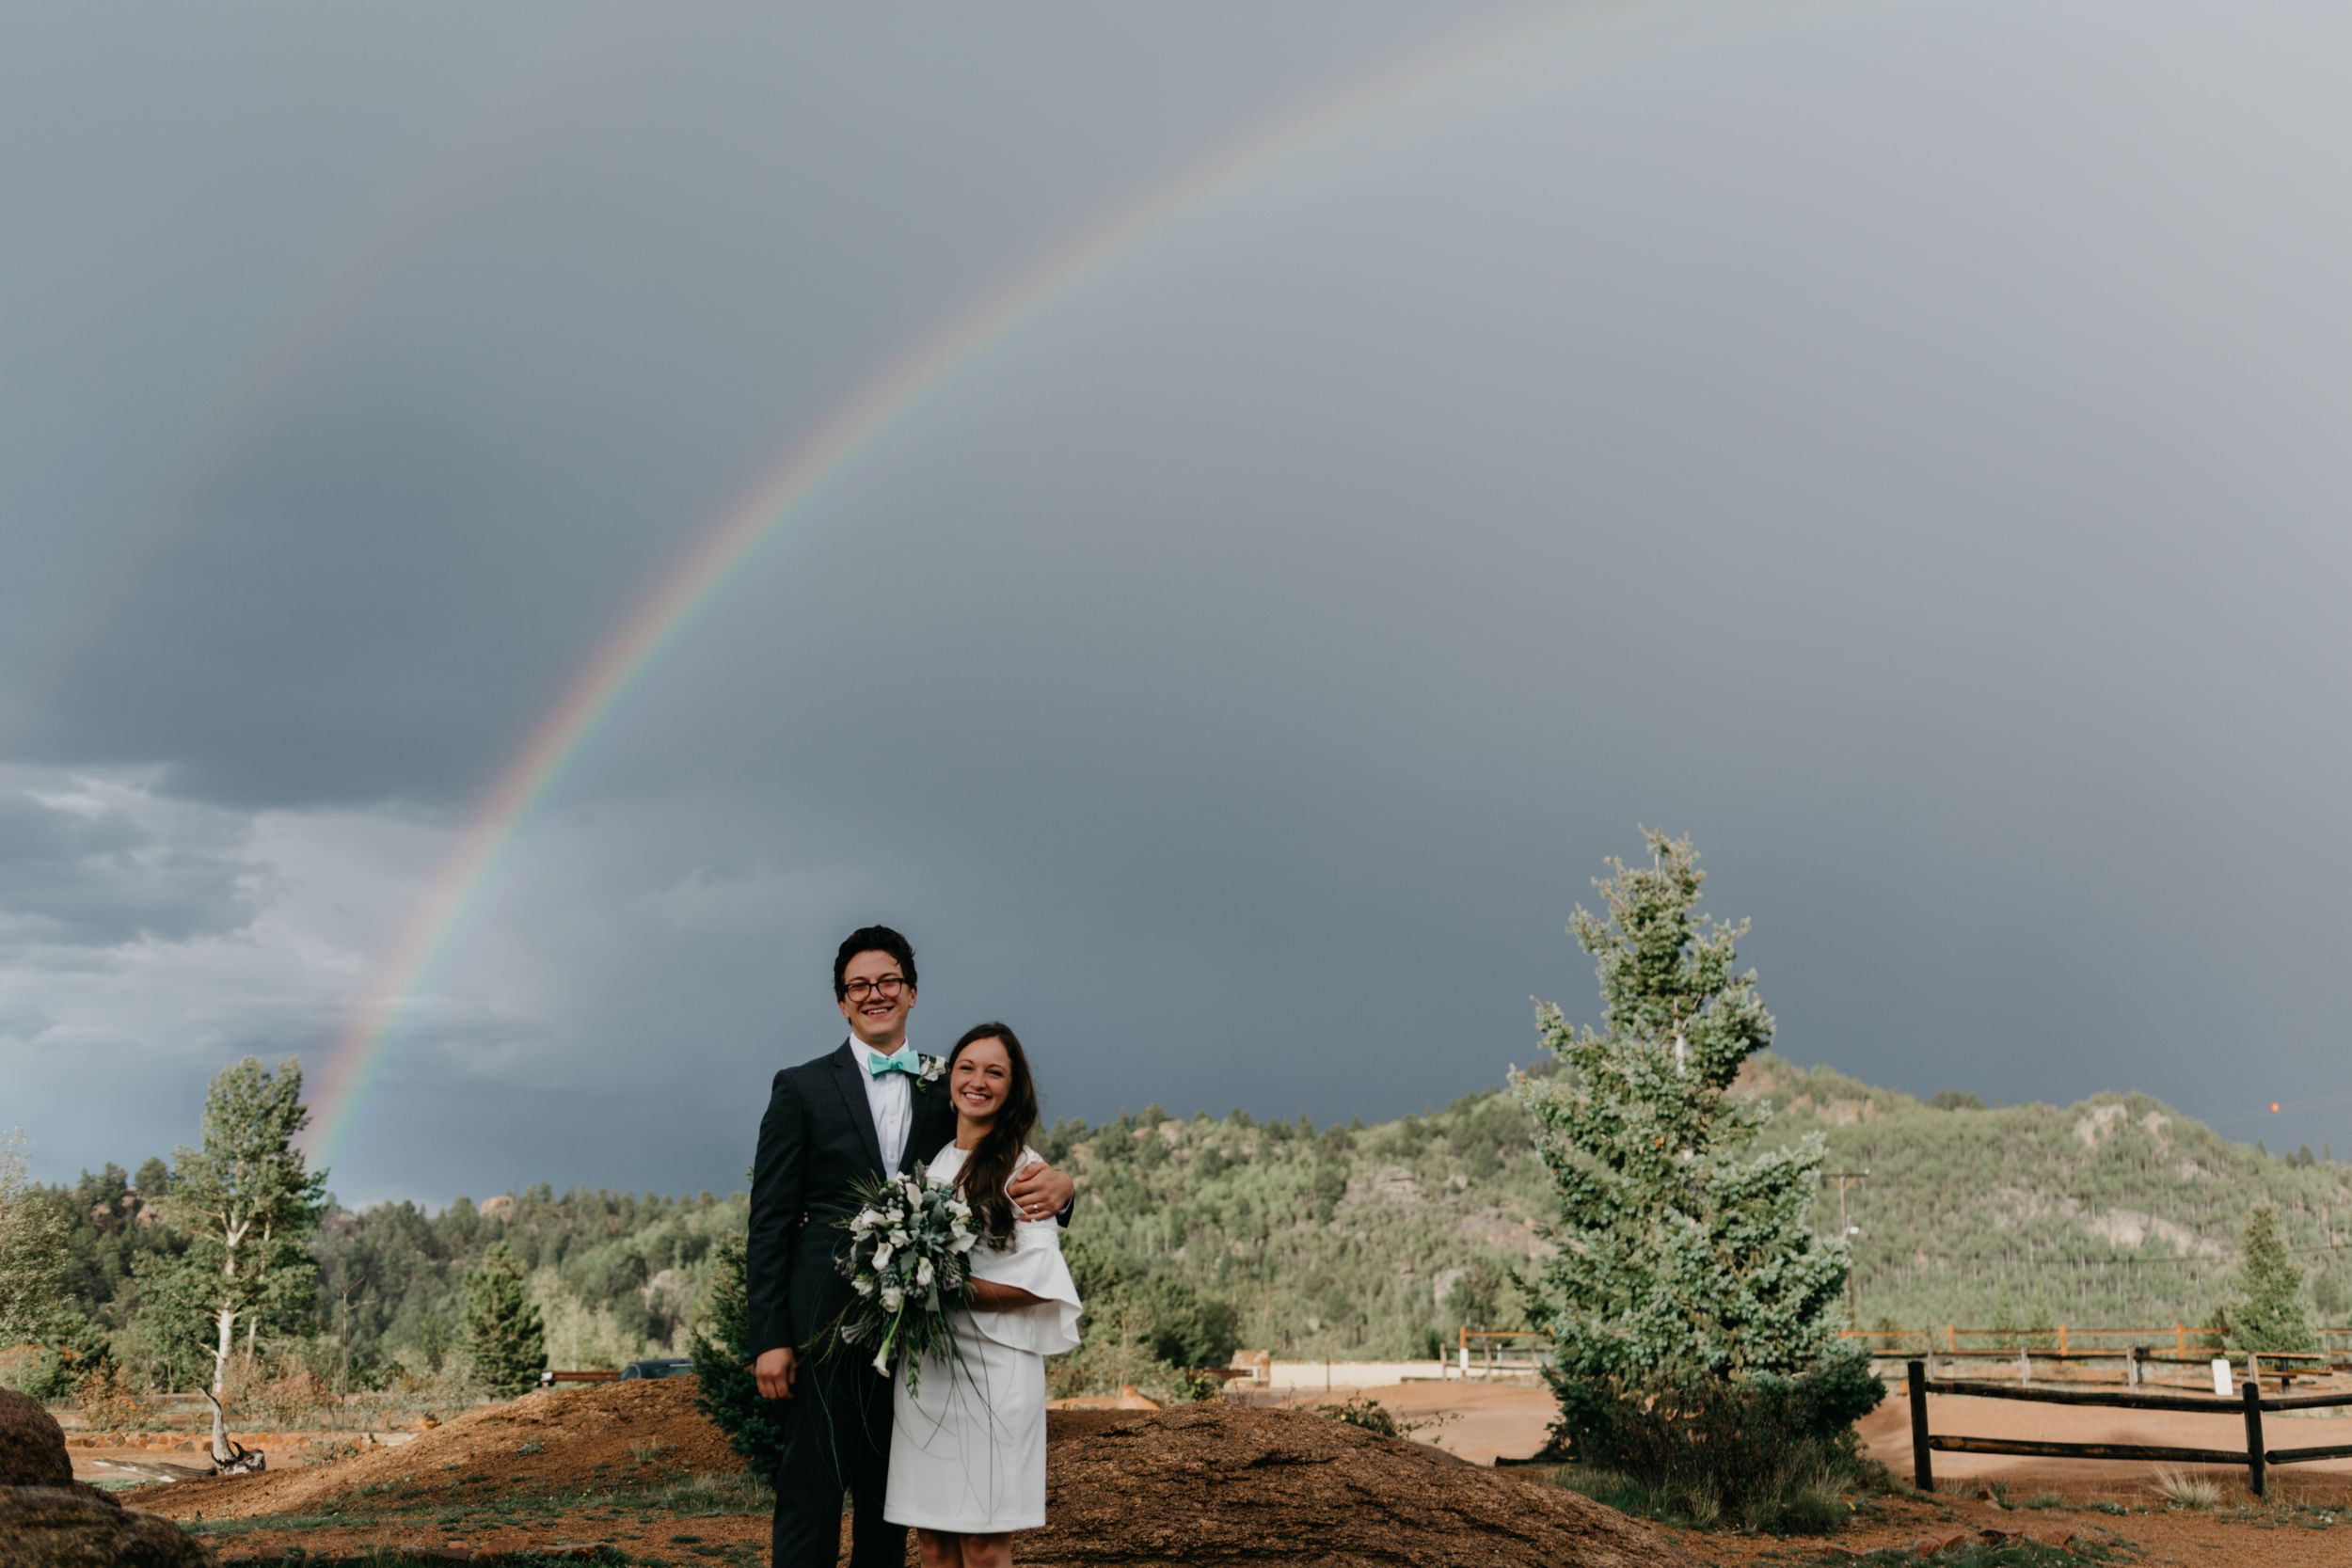 rainbow, wedding inspiration, colorado, wedding photographer, best of colorado weddings, beautiful wedding, simple, fun